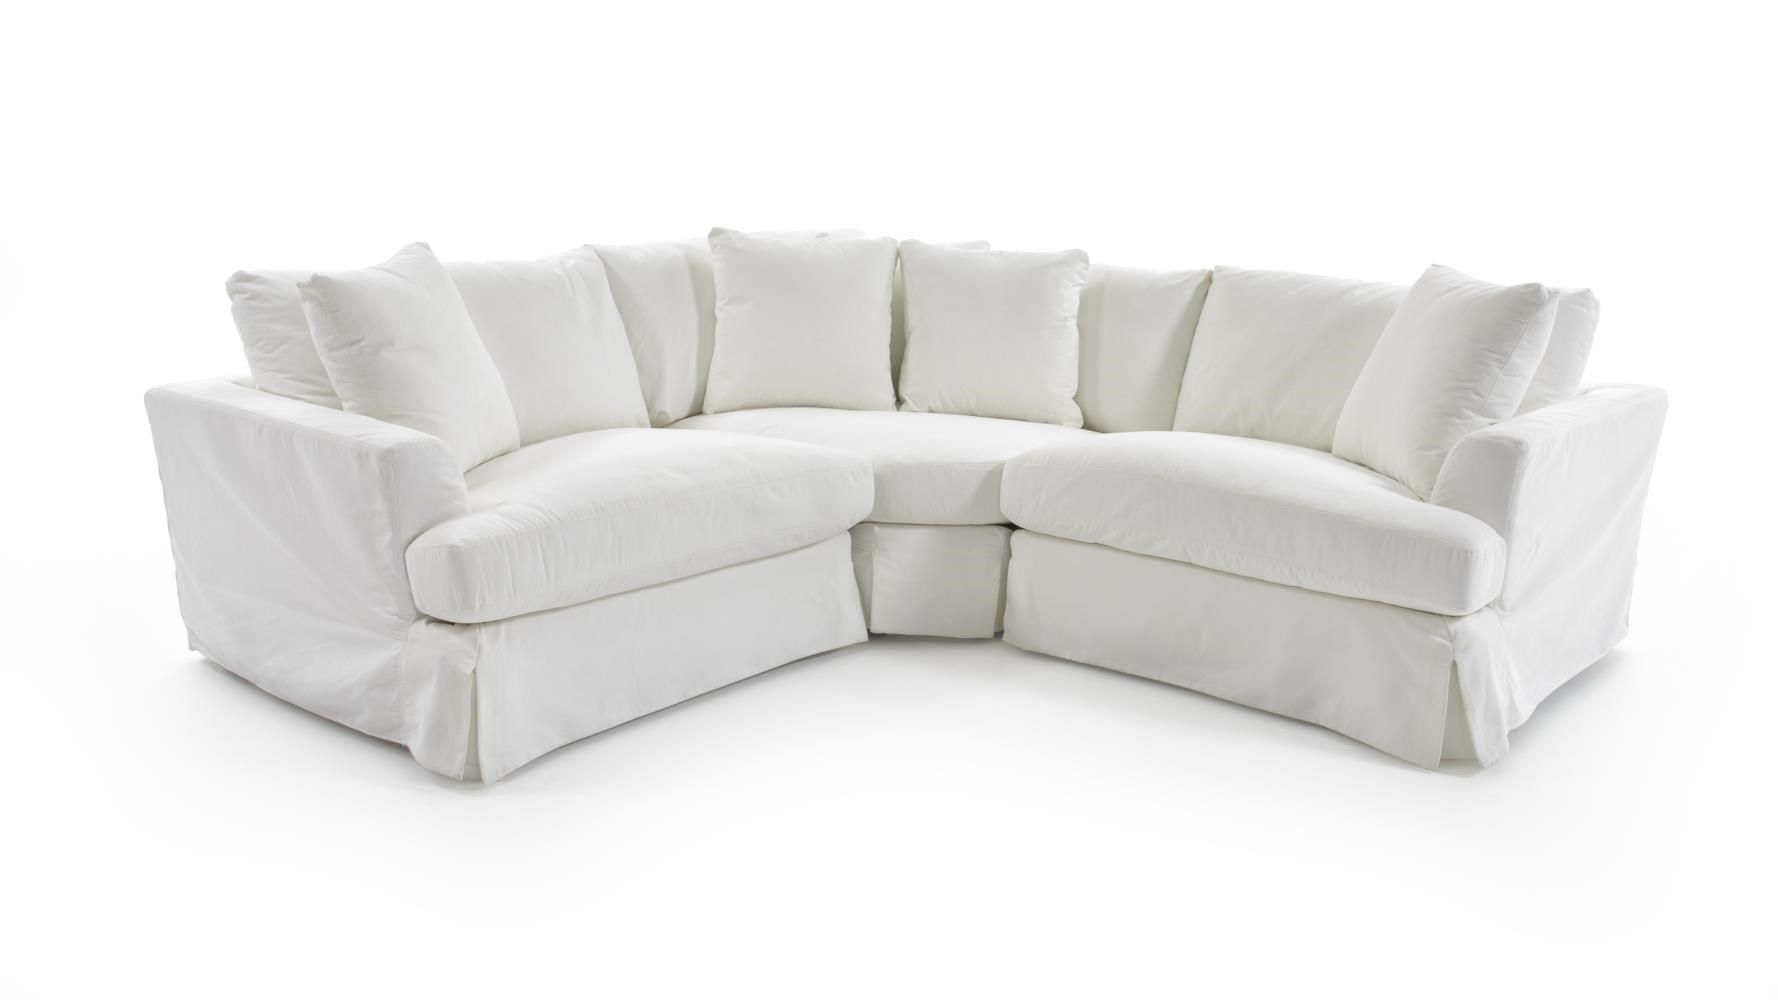 Amazing 1300 3 Pc Sectional Sofa By Synergy Home Furnishings At Baeru0027s Furniture Photo Gallery